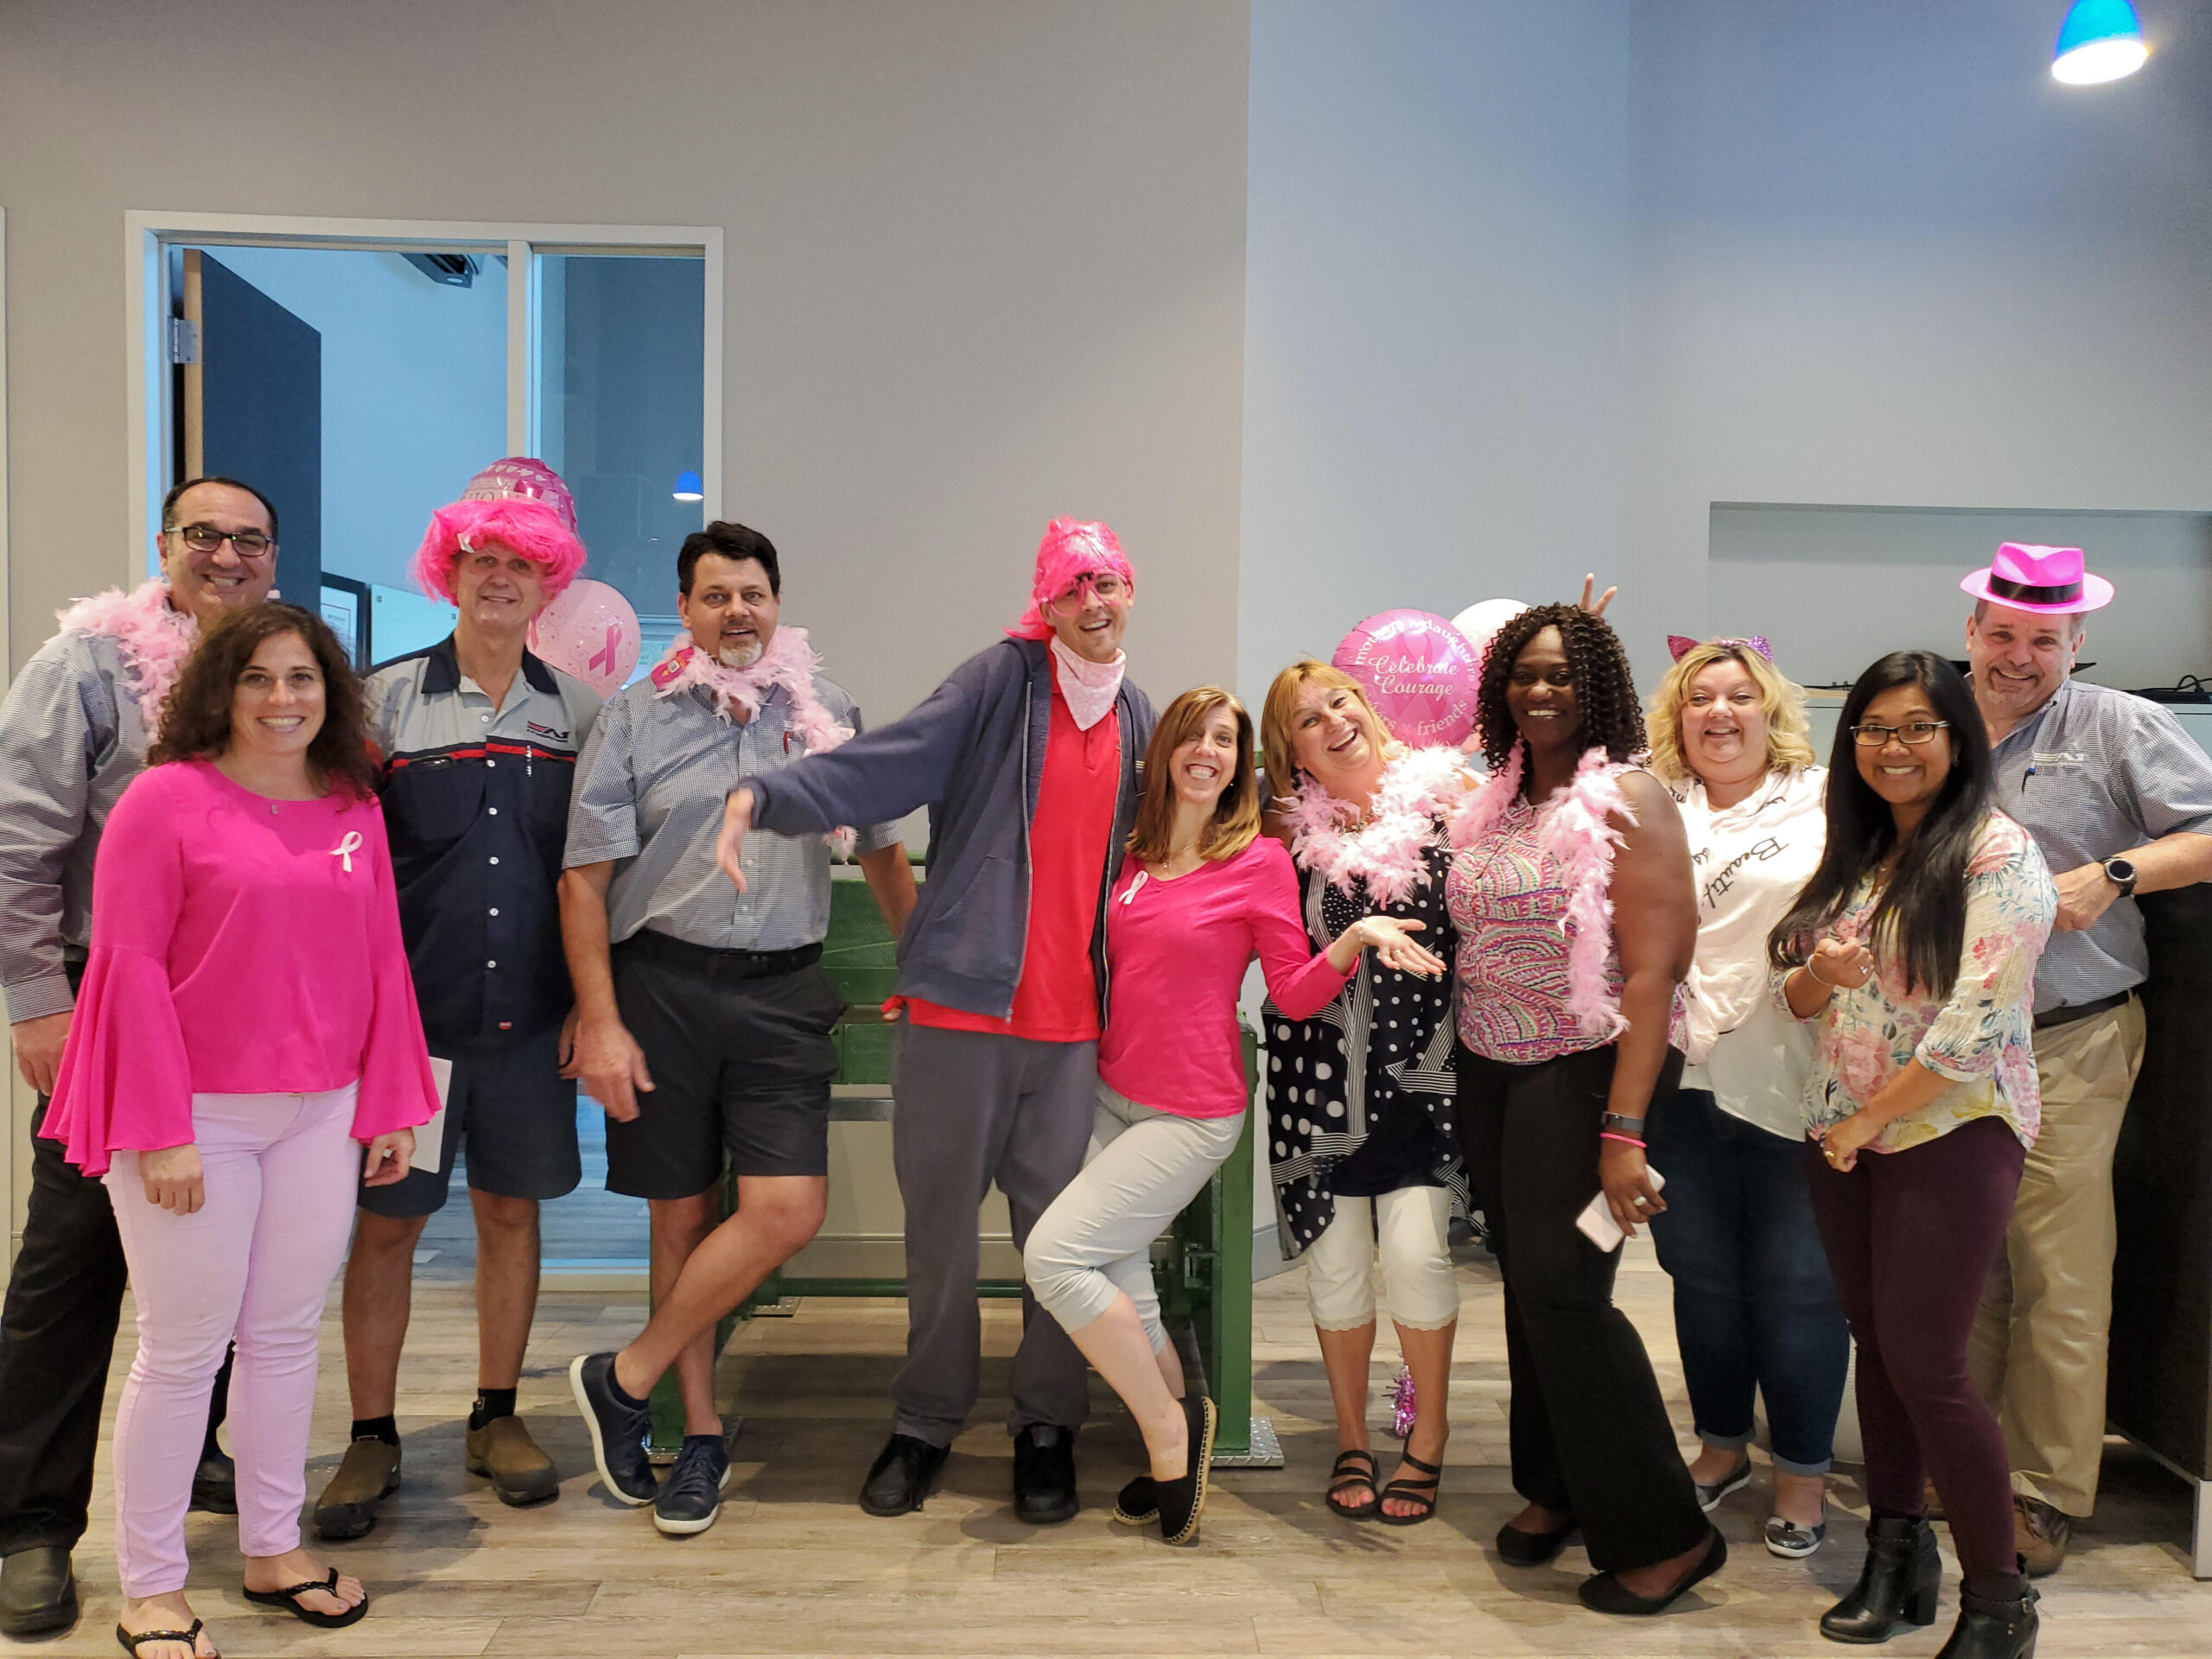 A1 in the community image of group of people wearing pink hats, boas etc.